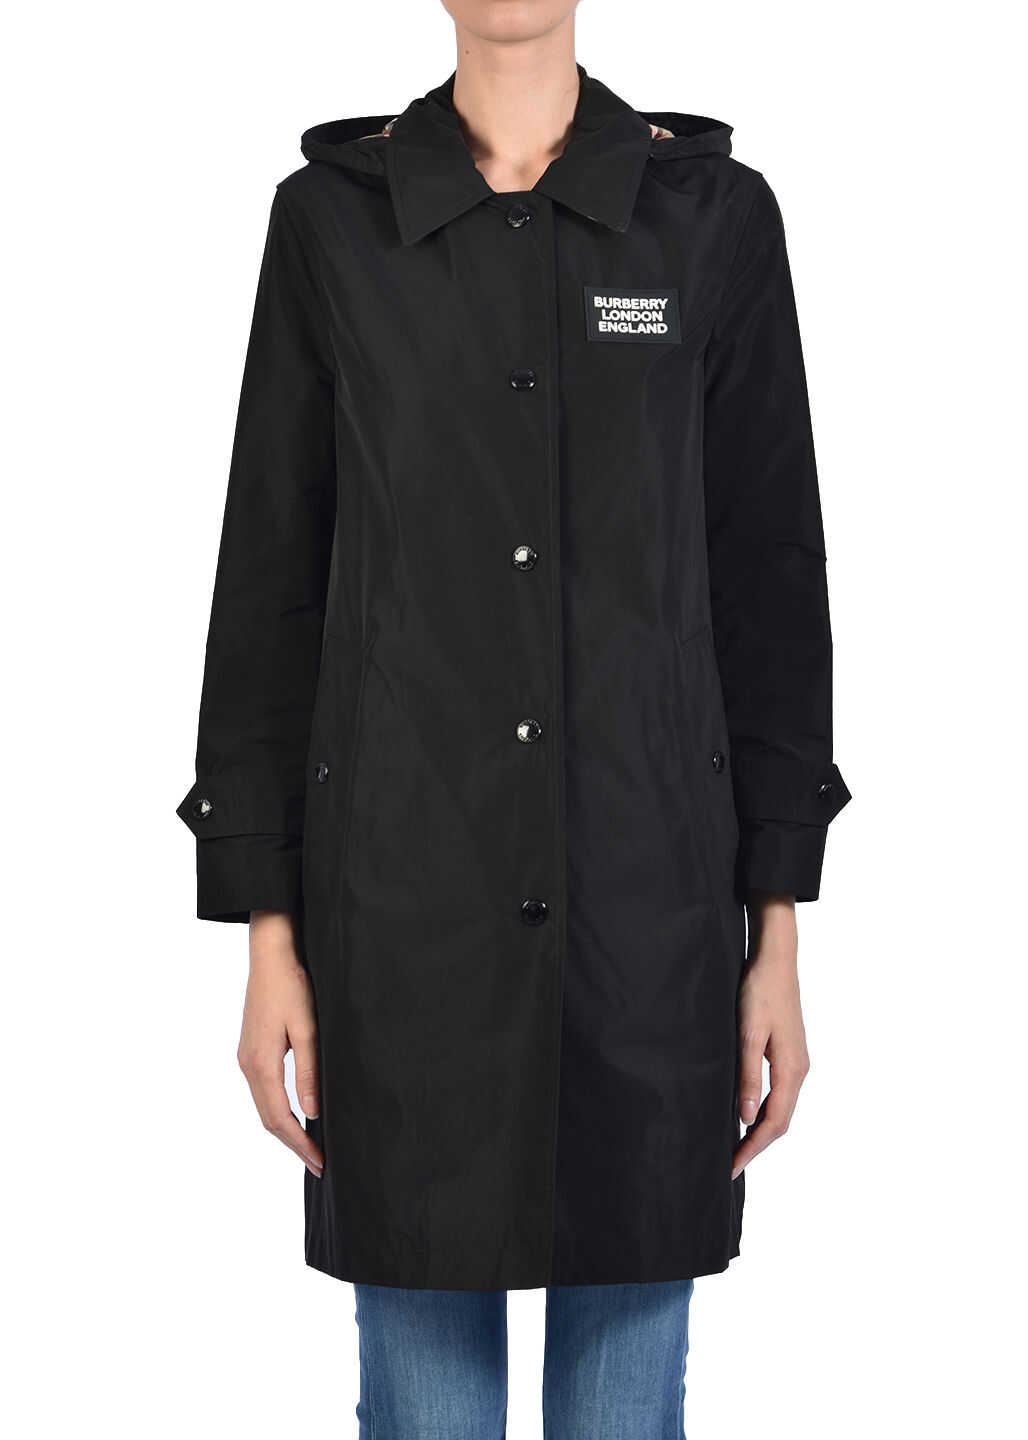 Burberry Taffeta Car Coat Nero Black